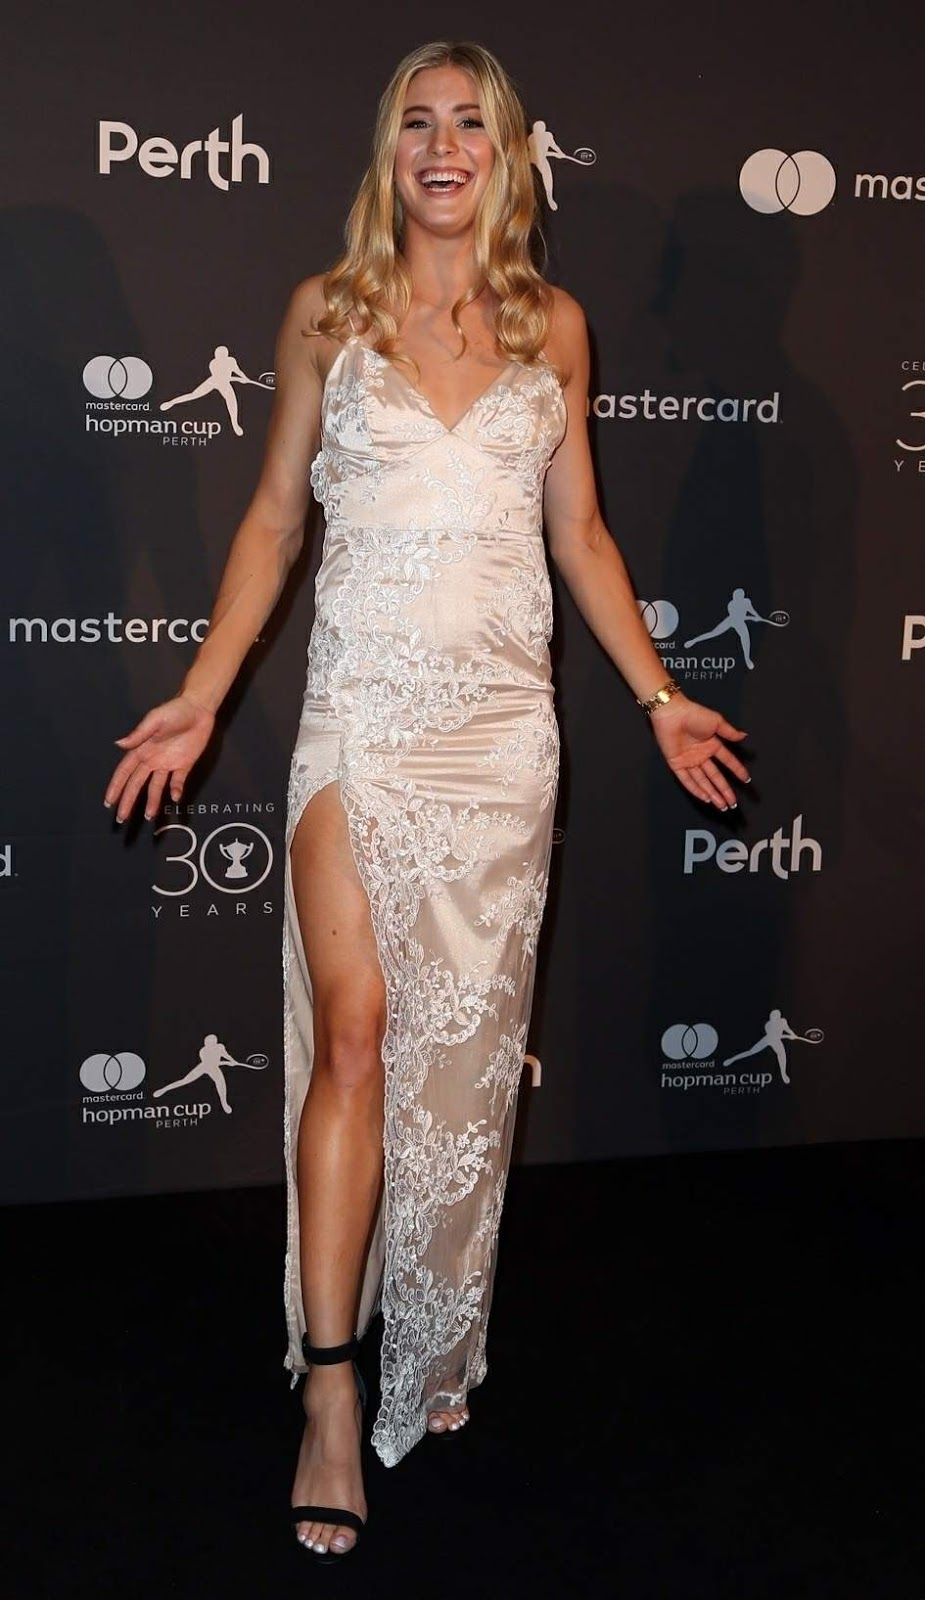 Eugenie Bouchard Posing at Hopman Cup New Years Eve Players Ball